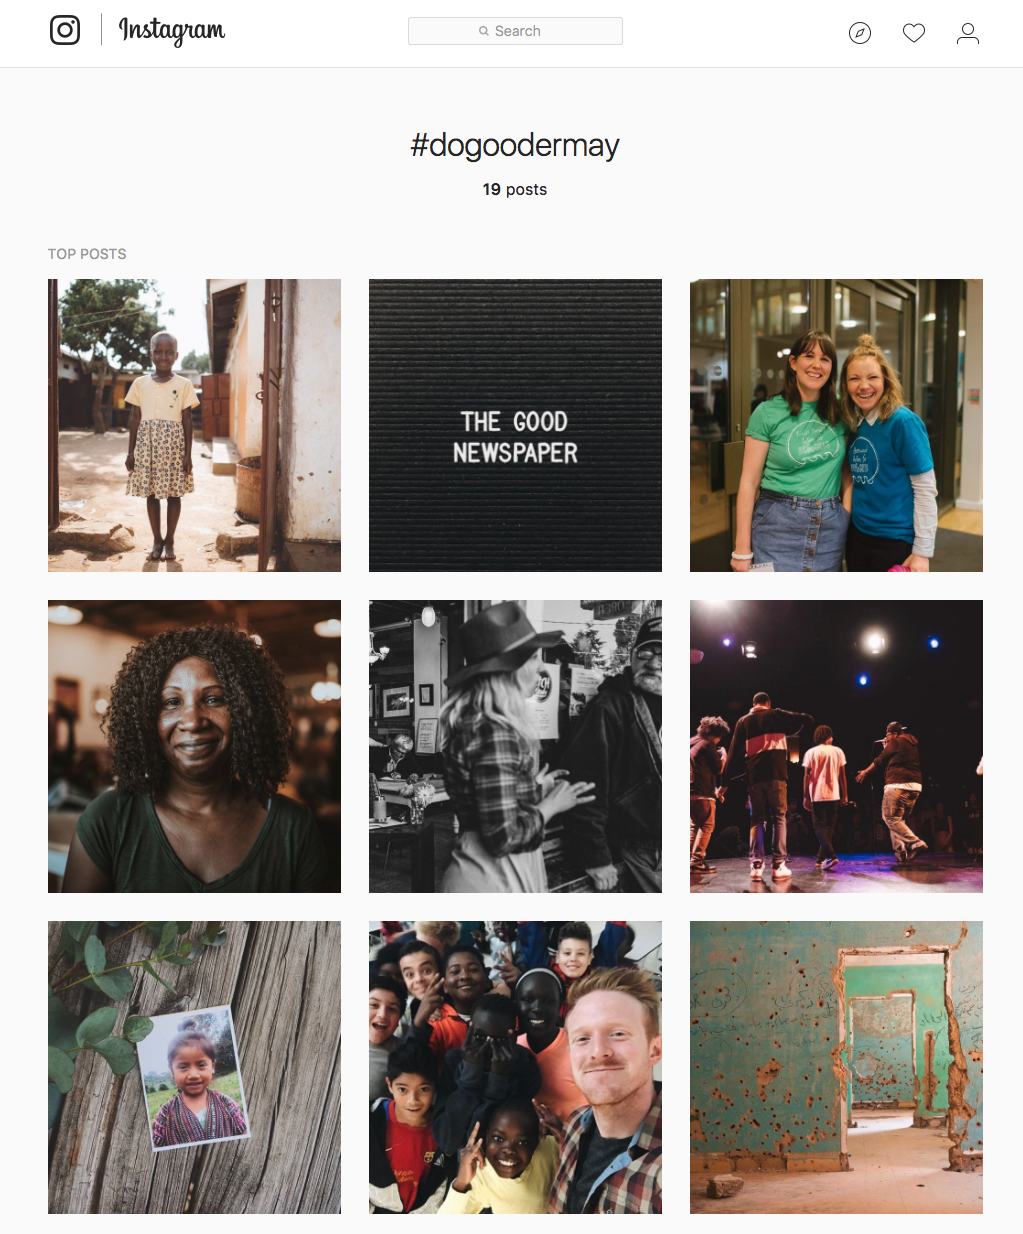 check out #dogoodermay on Instagram to check out our community's posts!